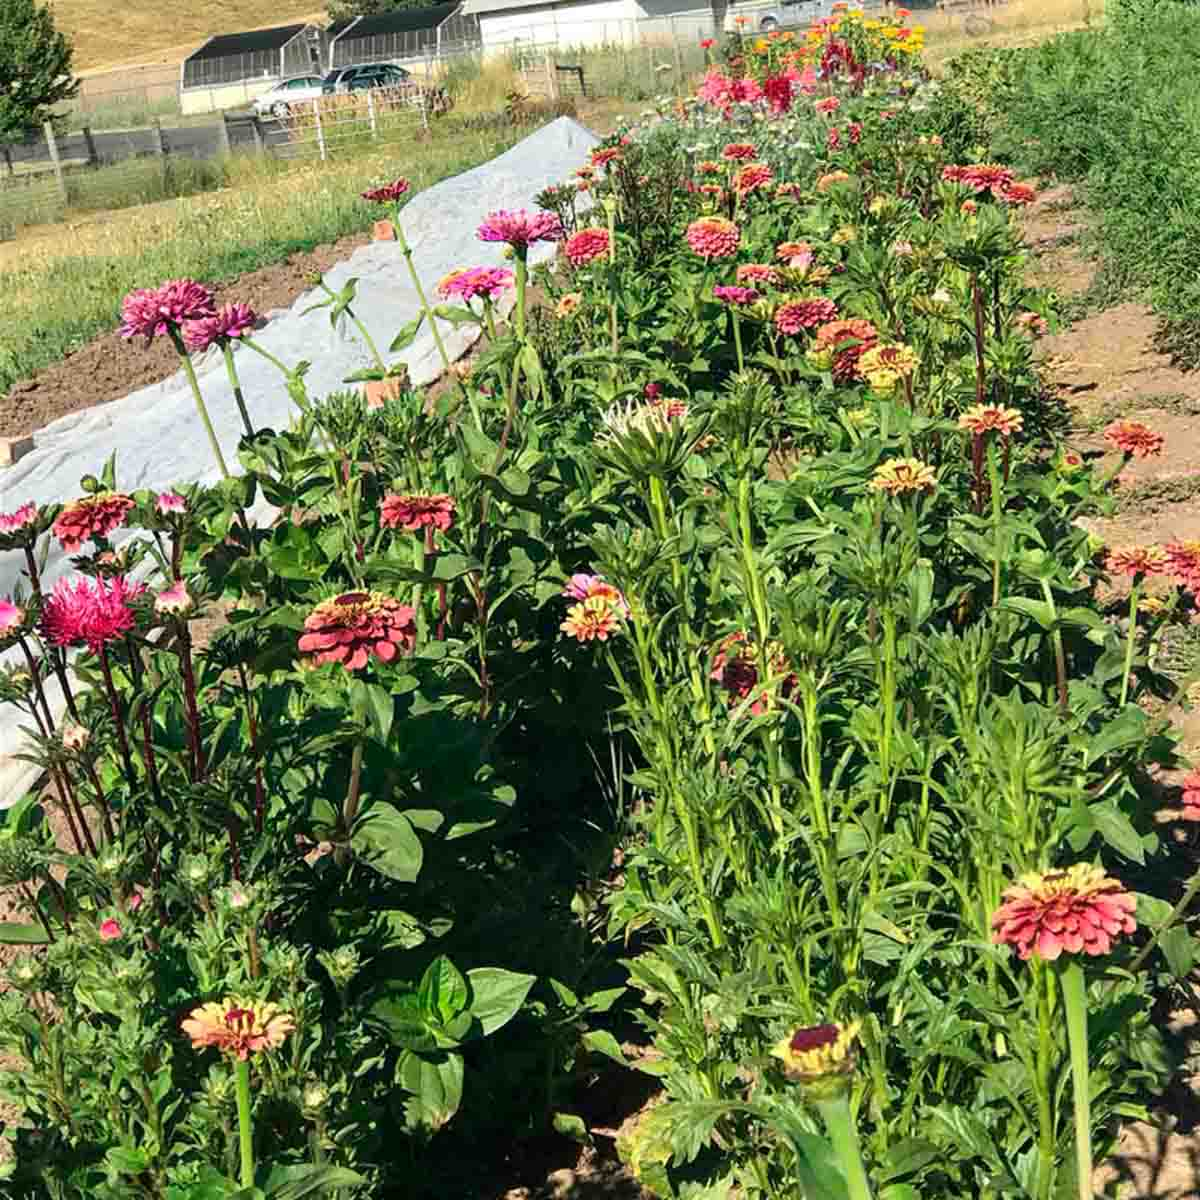 A variety of flowers grown on the Soil Stewards Farm